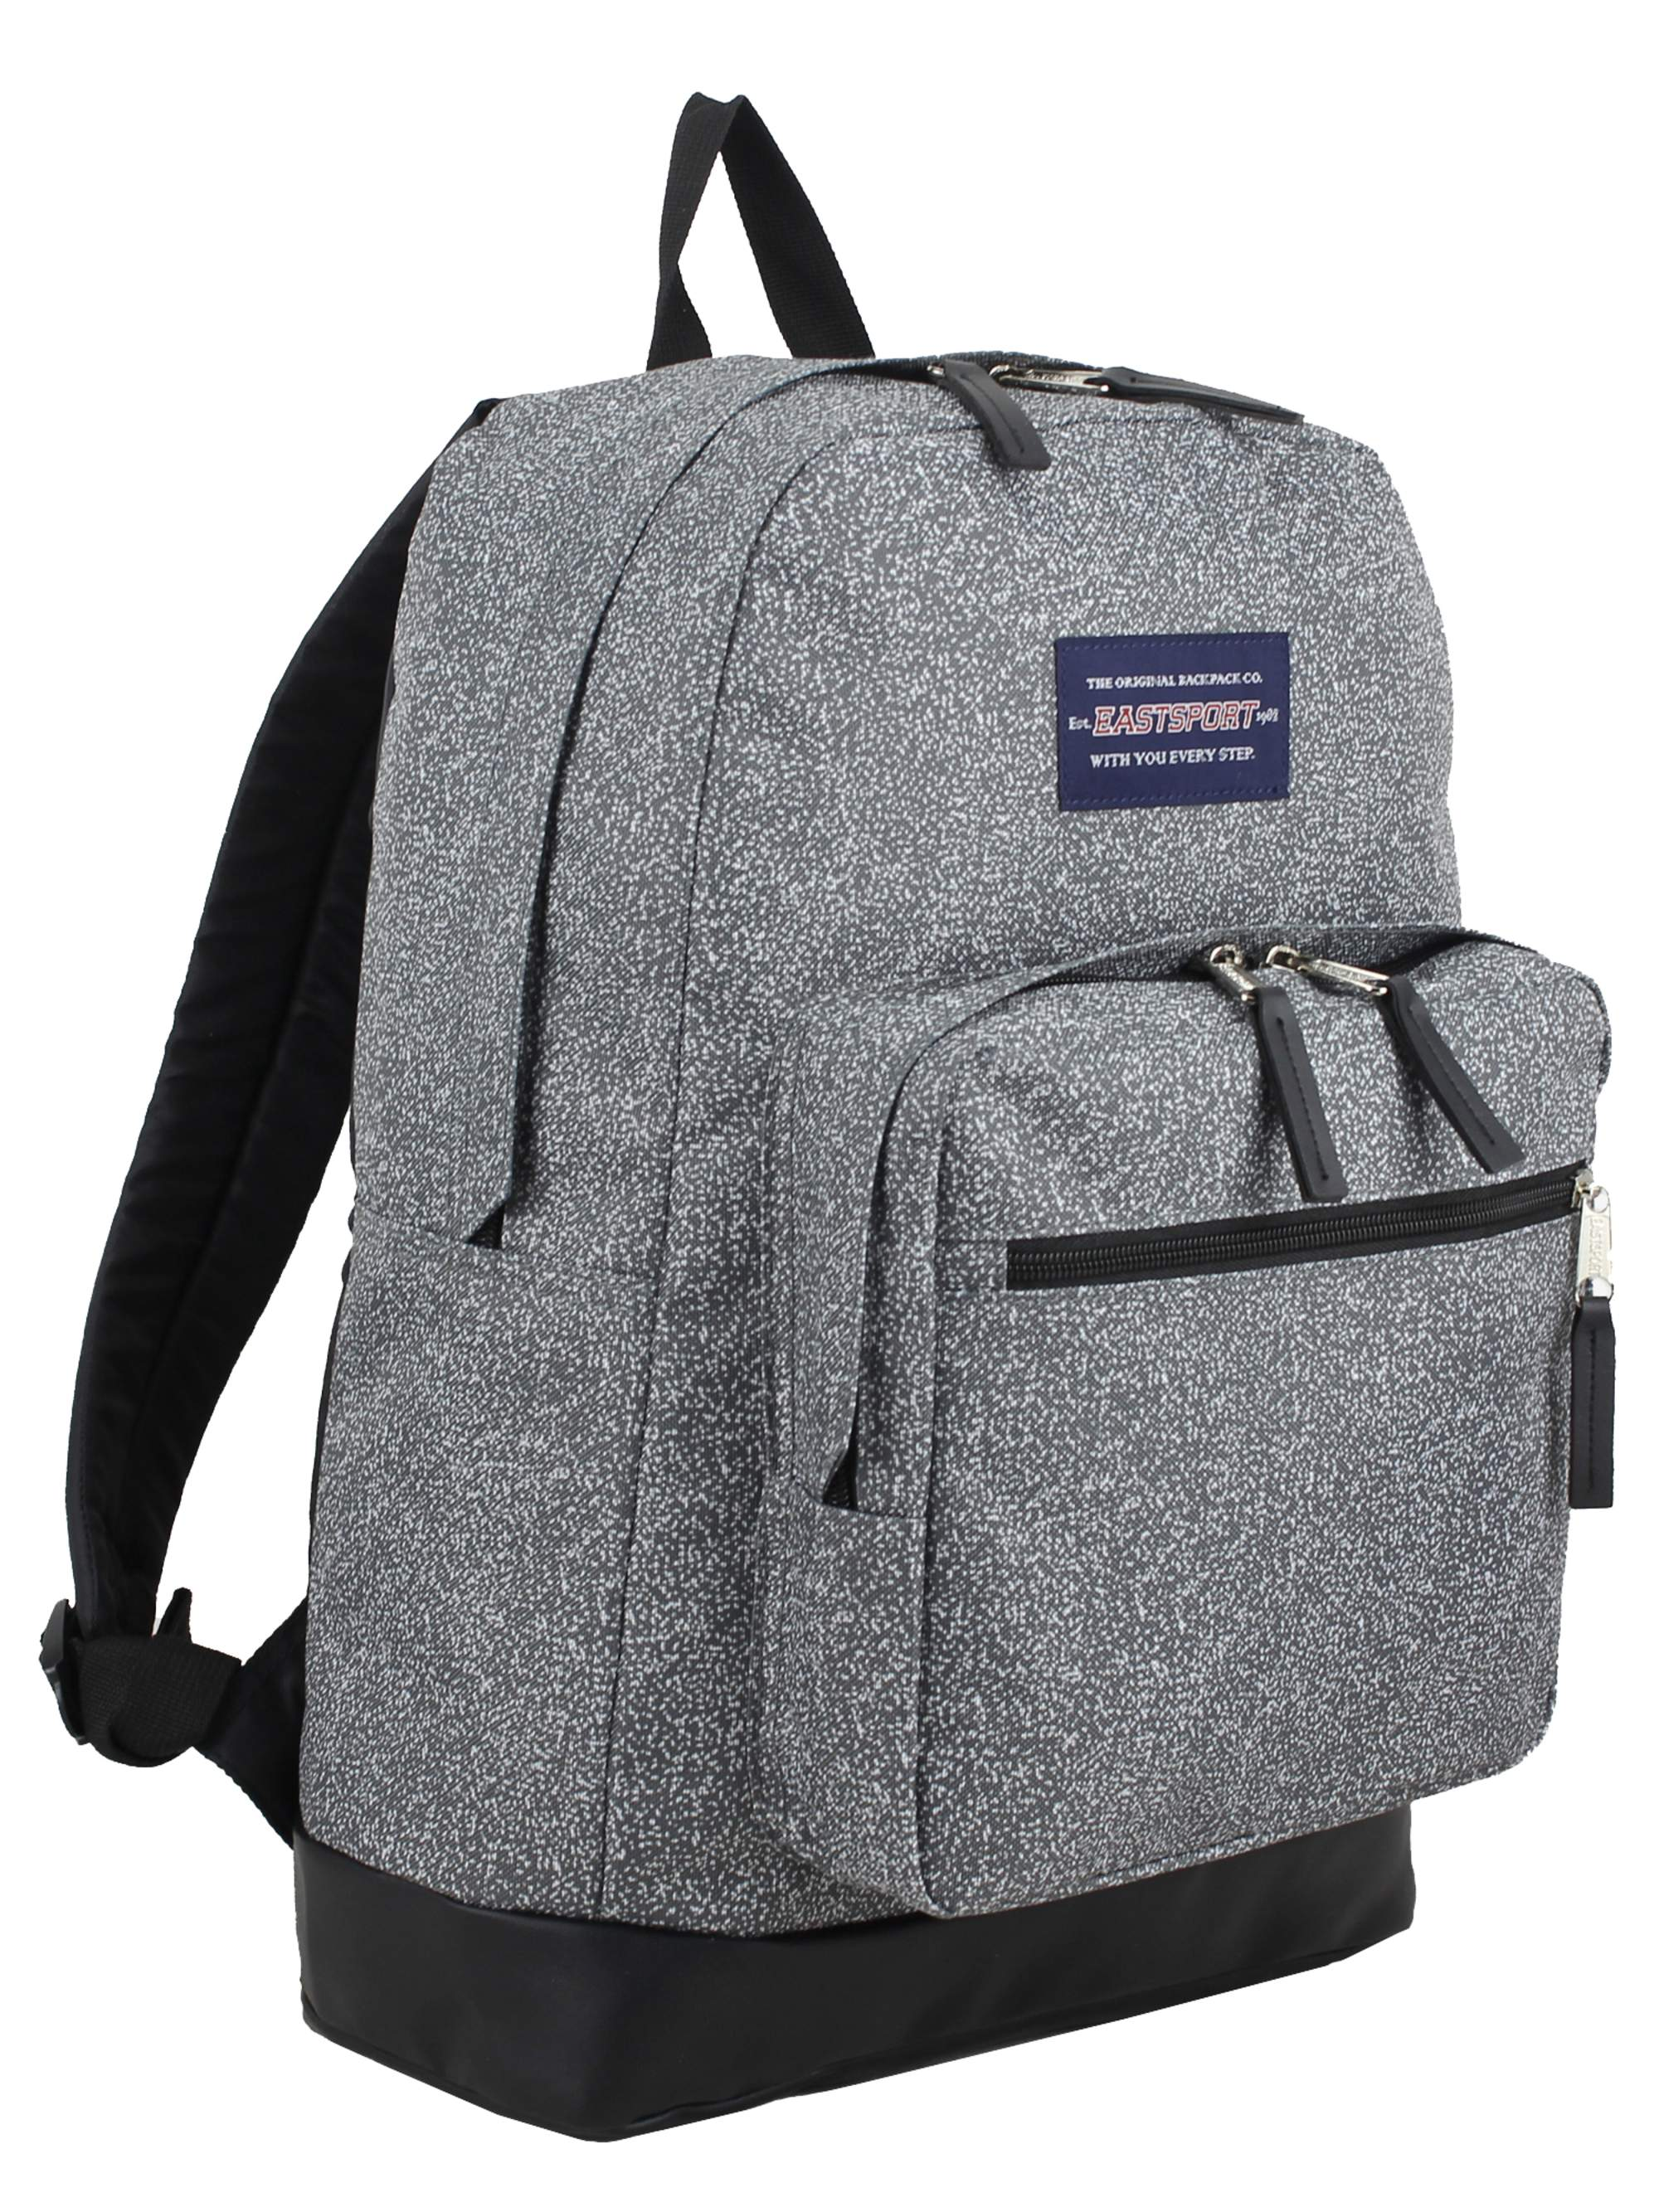 Eastsport Power Tech Backpack with External USB Charging Port